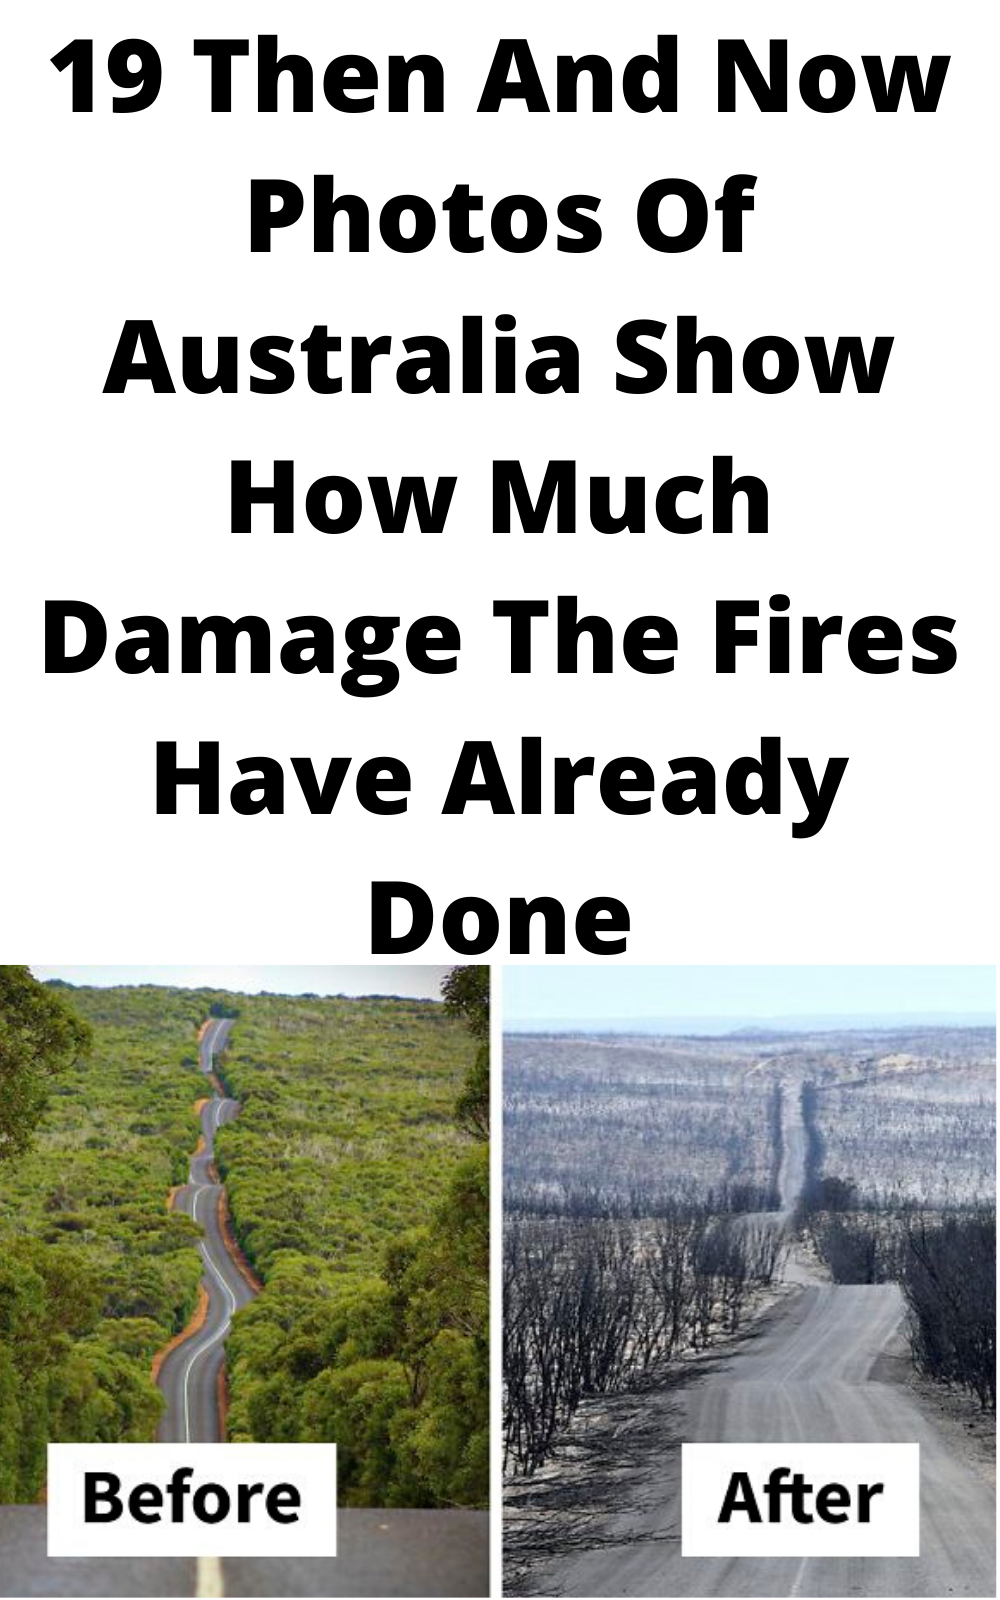 19 Then And Now Photos Of Australia Show How Much Damage